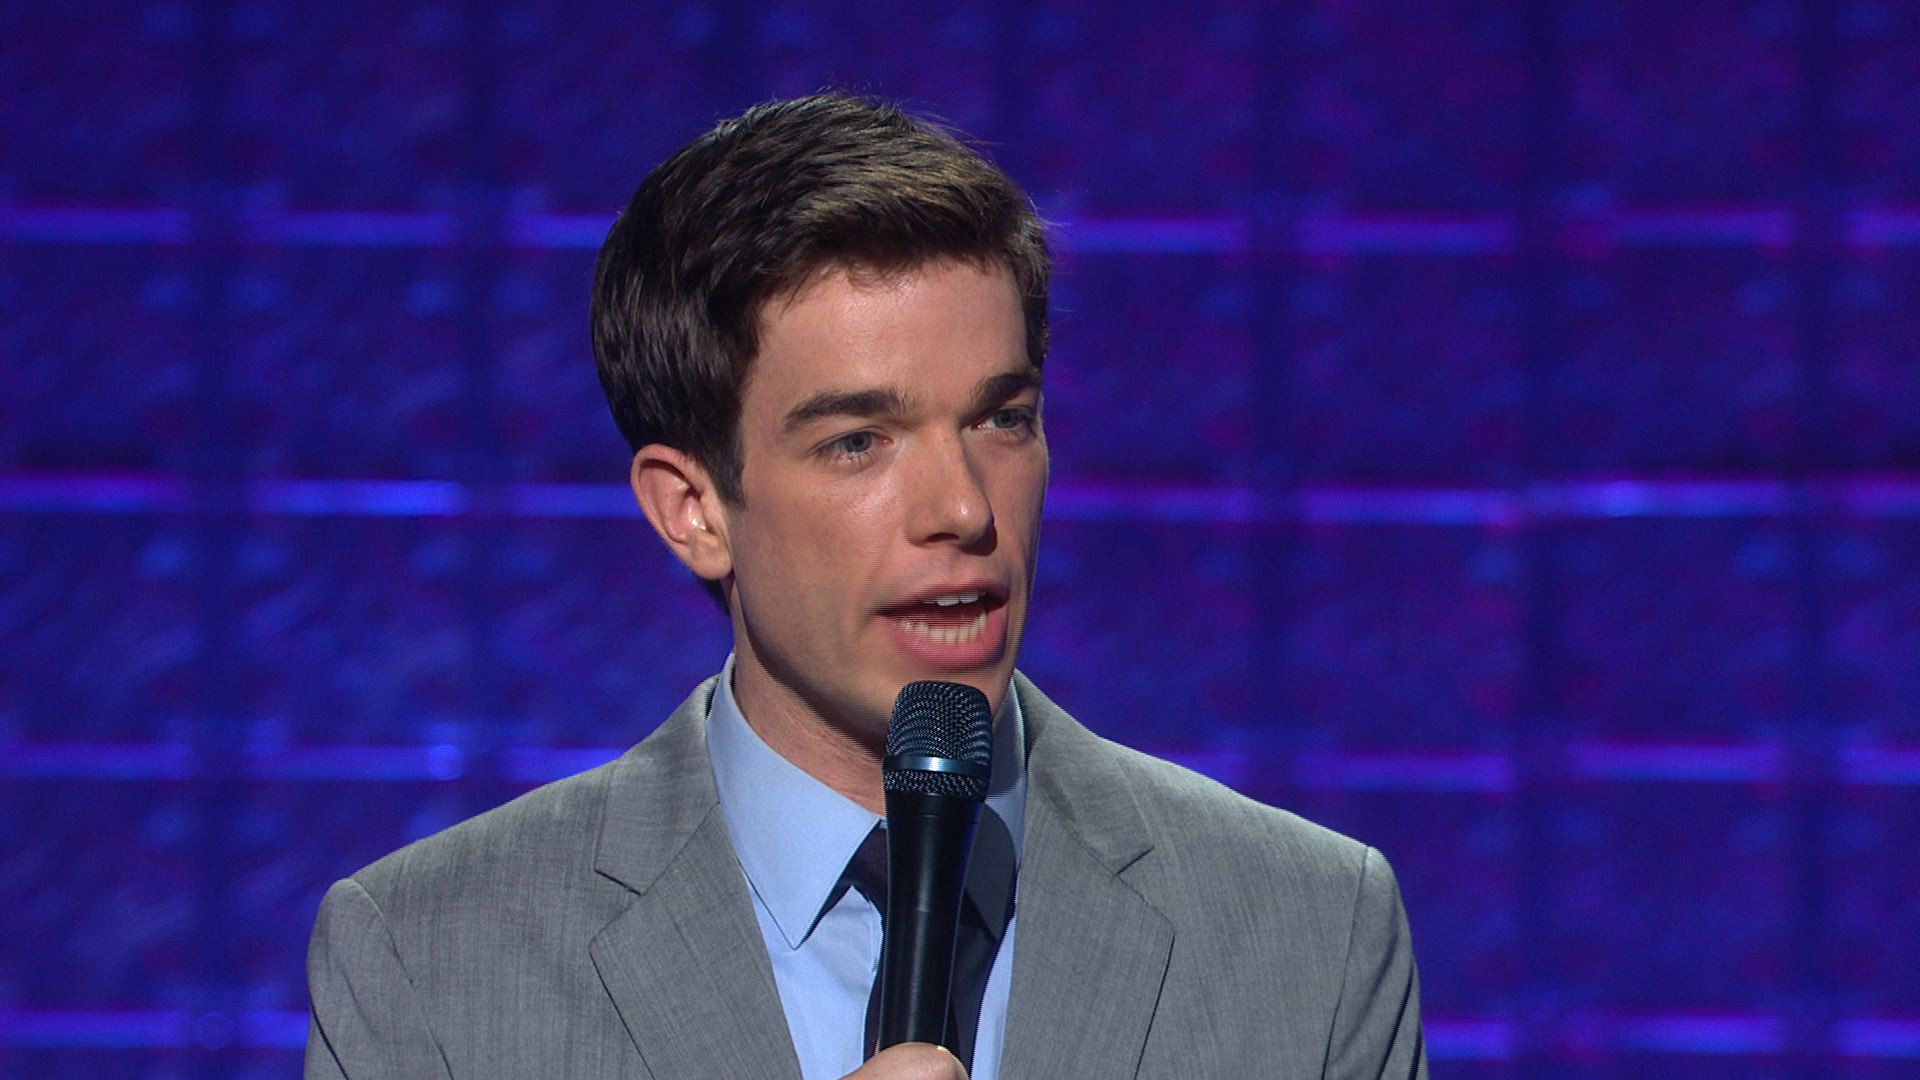 John Mulaney Tracy Morgan John Oliver And More Joining Oddball Comedy Festival Ifc